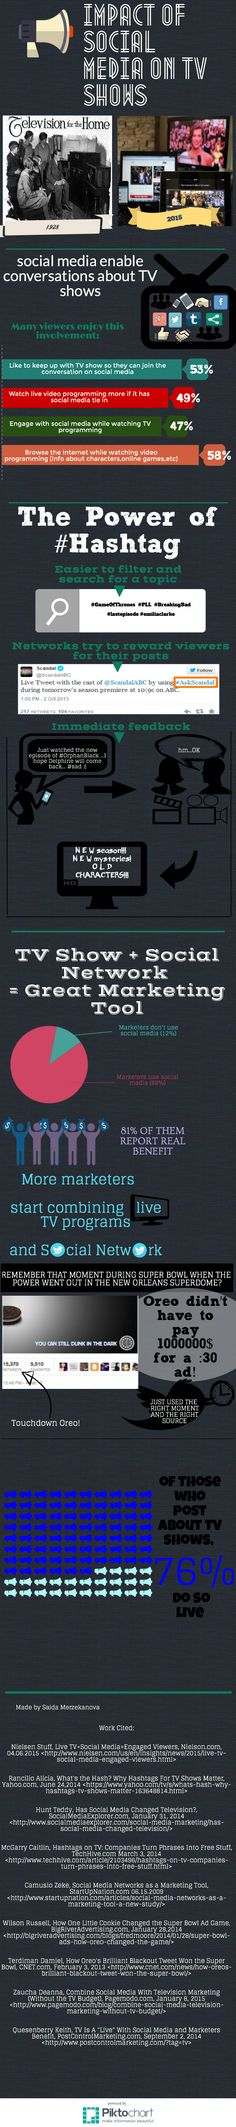 IMPACT OF SOCIAL MEDIA ON TV SHOWS